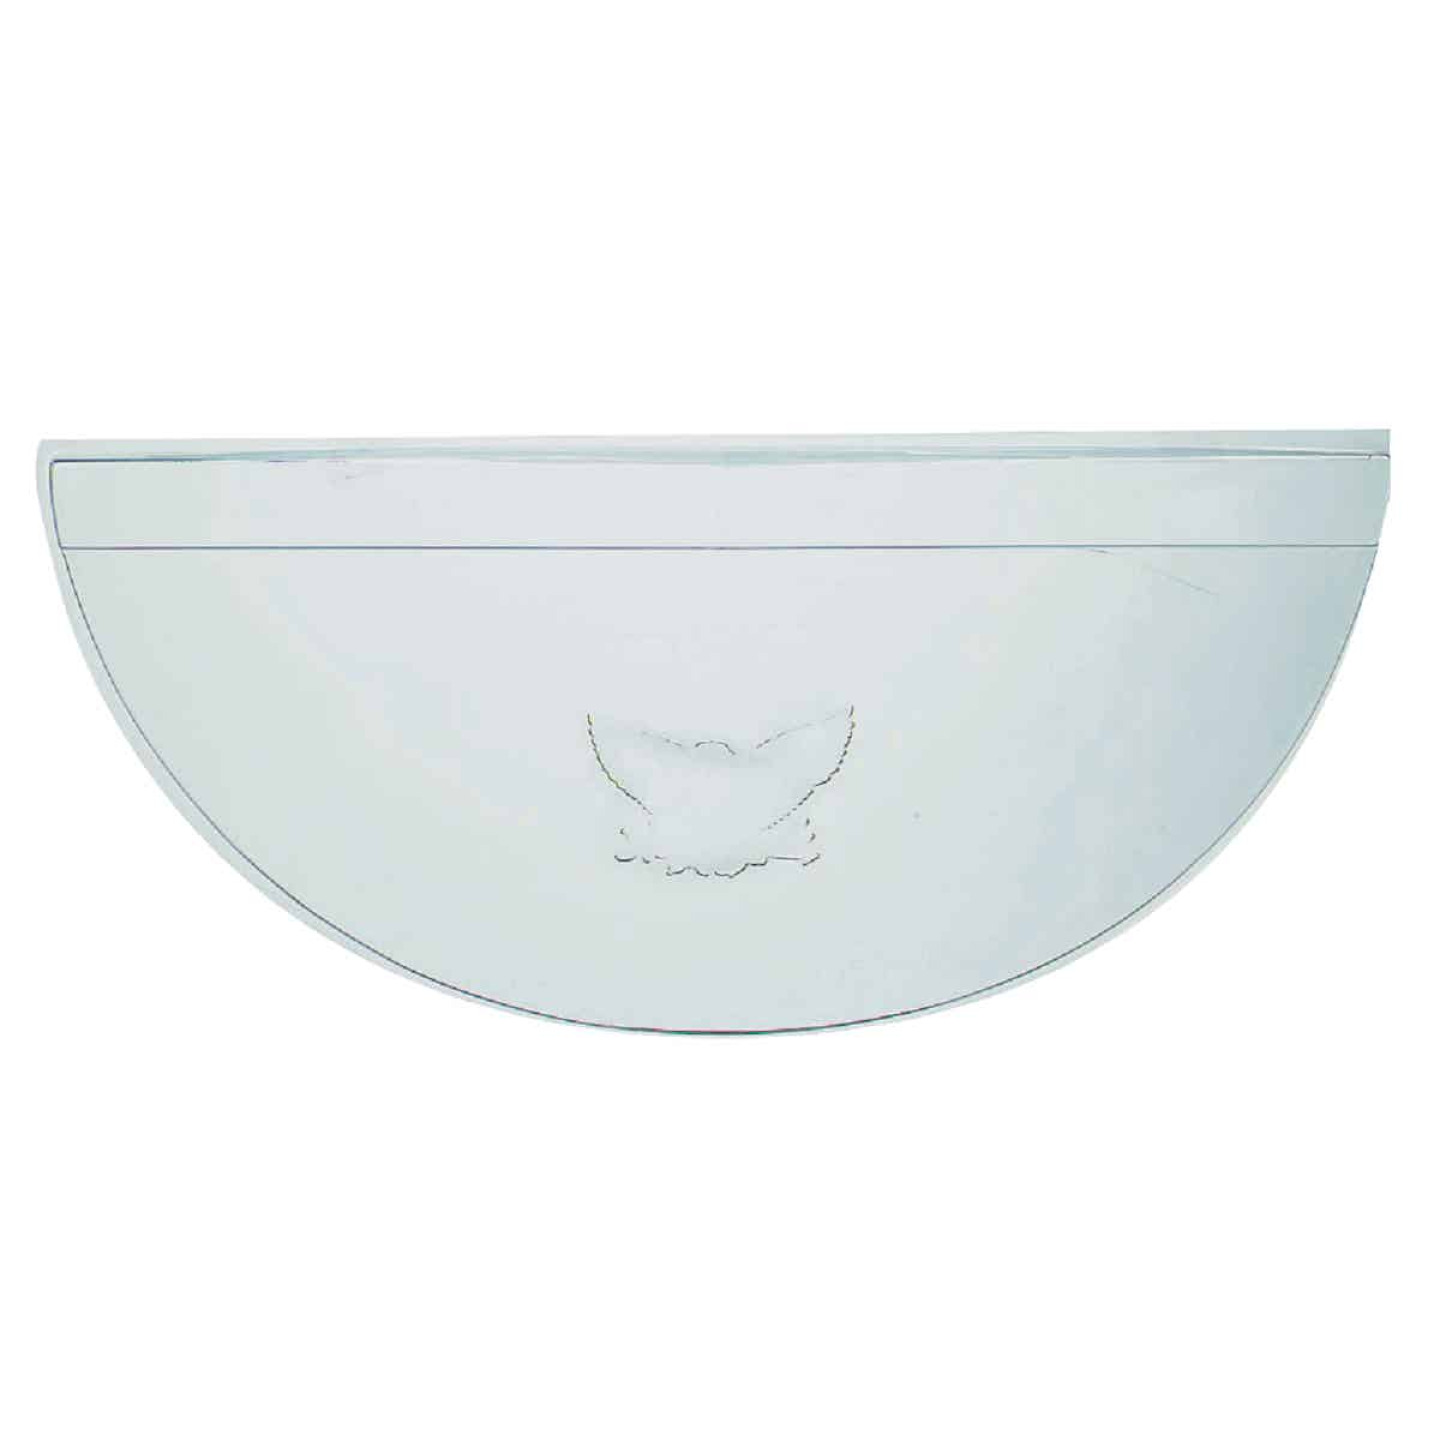 40 In. x 17 In. Plastic Window Well Cover Image 1